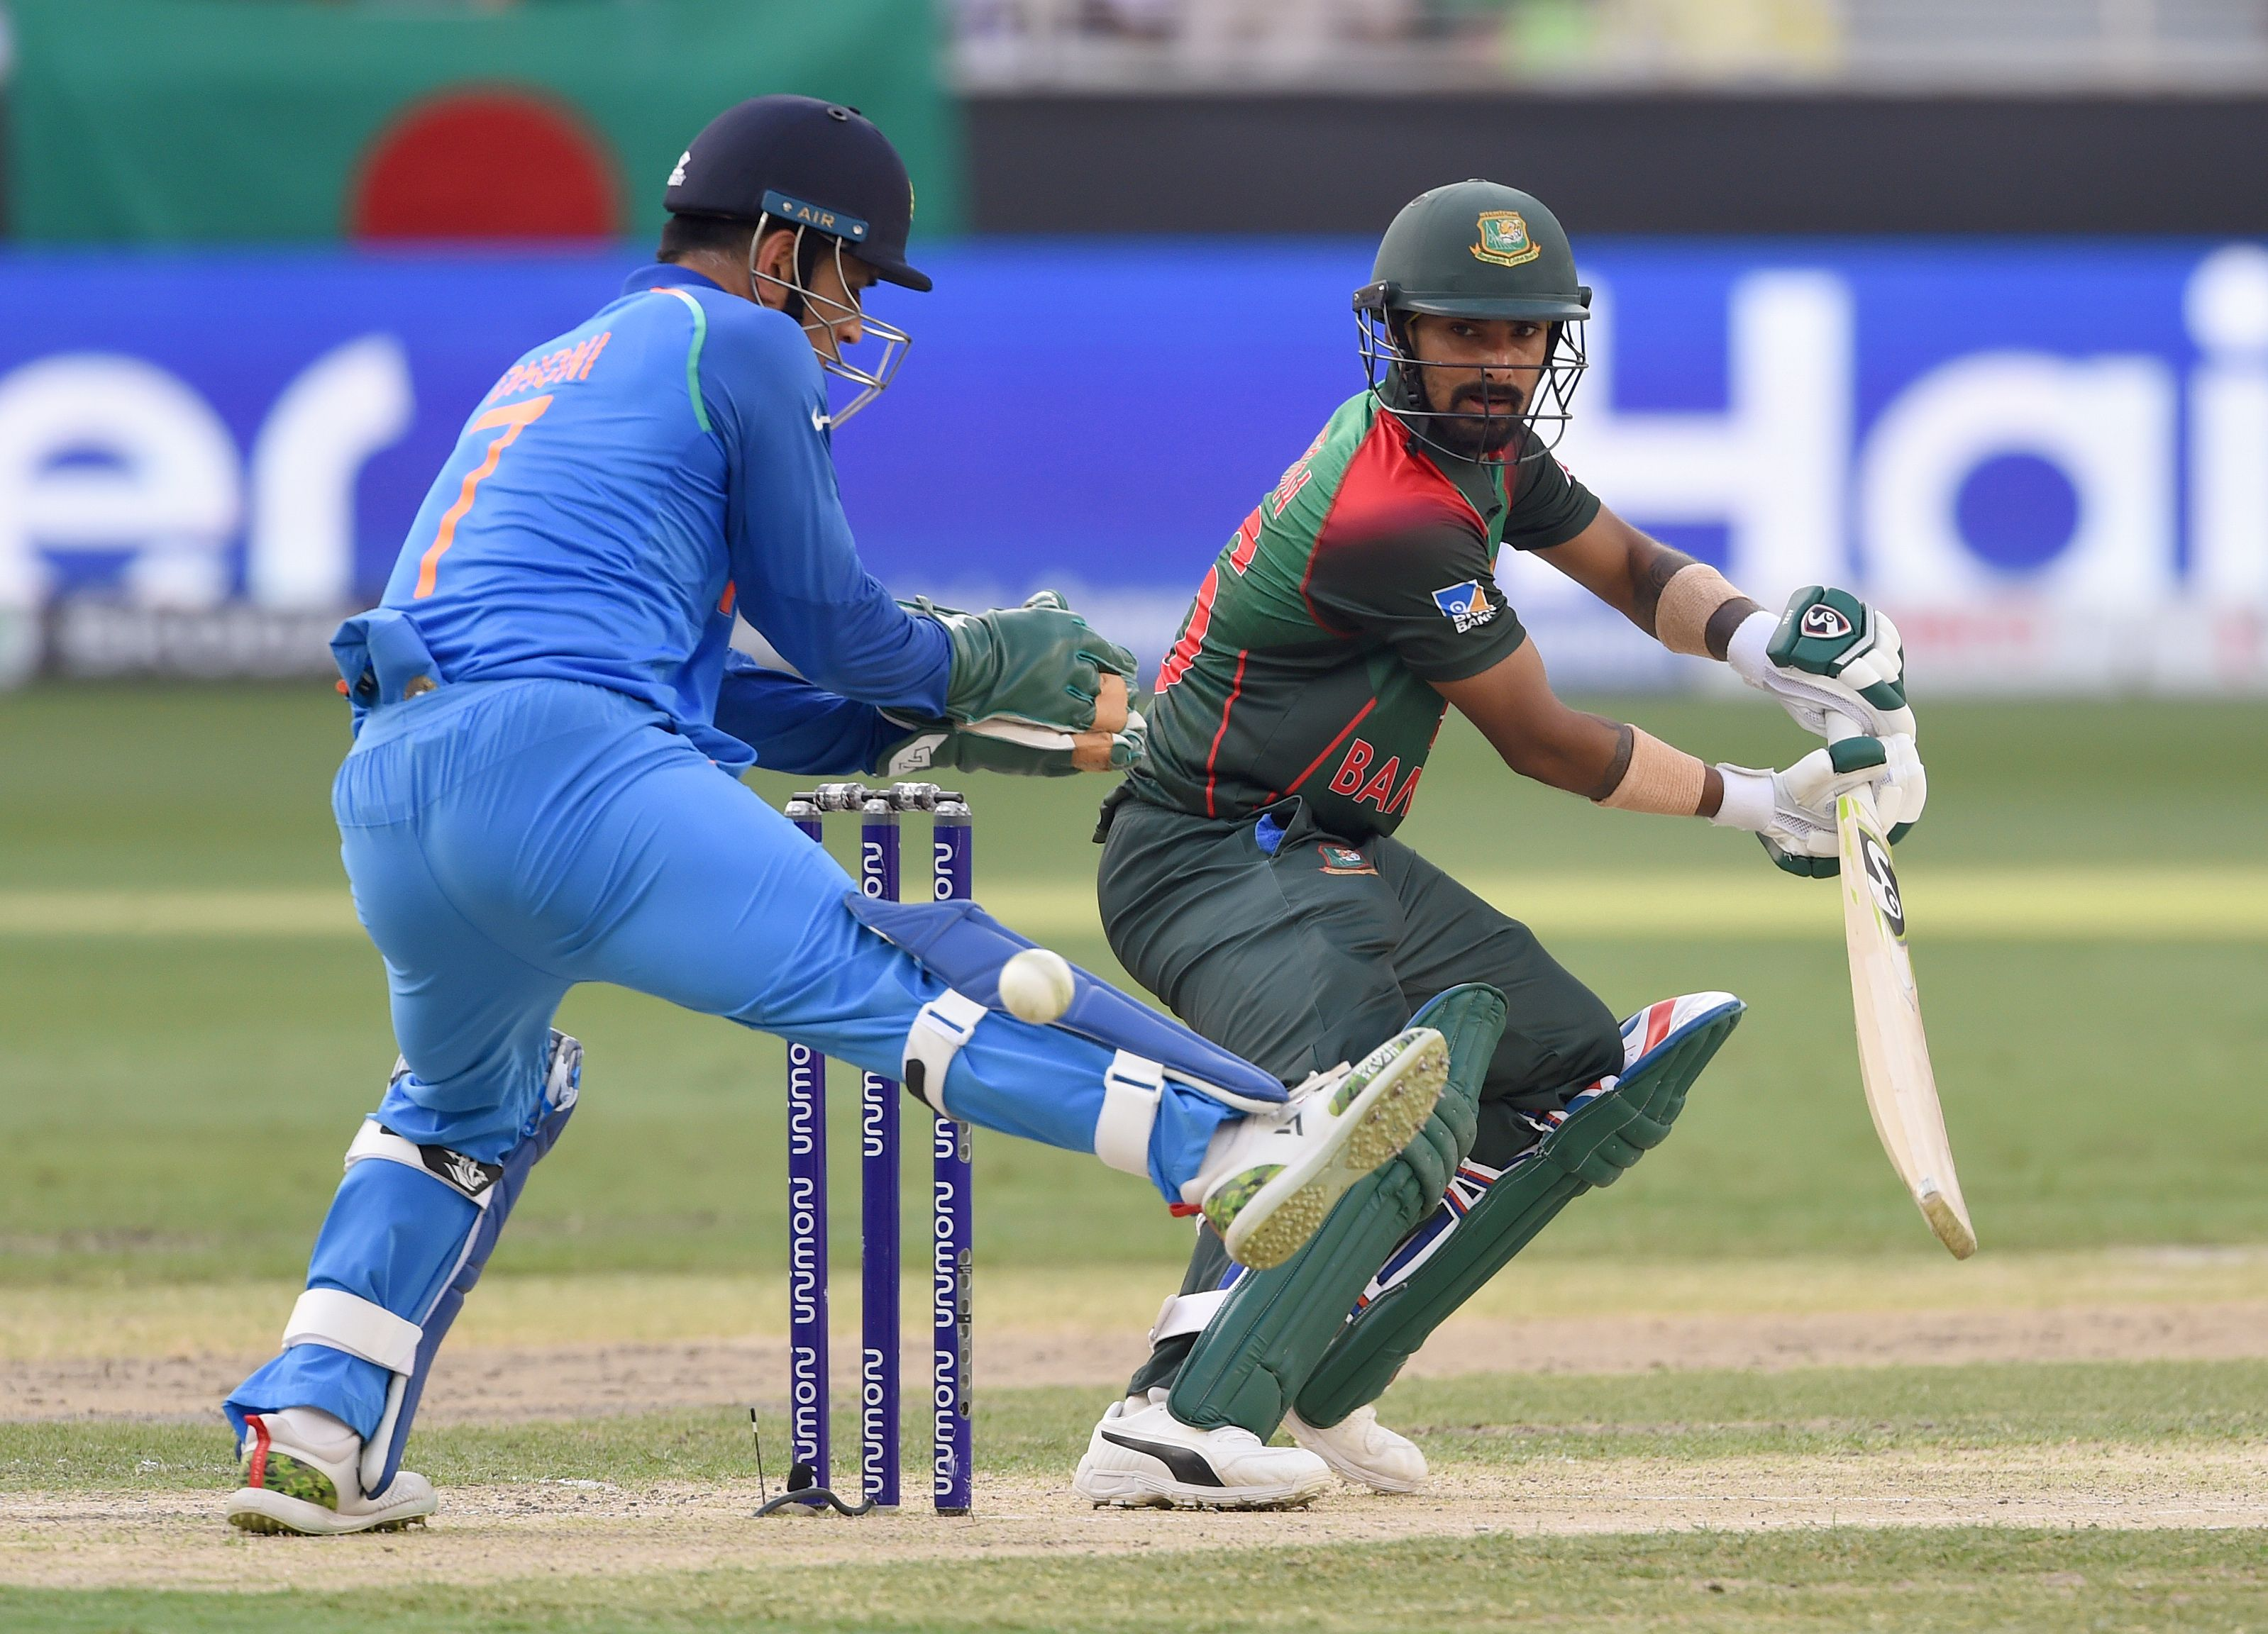 Bangladesh batsman Liton Das plays a shot as Indian wicketkeeper Mahendra Singh Dhoni (L) looks on during the final one day international (ODI) Asia Cup cricket match between Bangladesh and India at the Dubai International Cricket Stadium in Dubai on September 28, 2018. / AFP